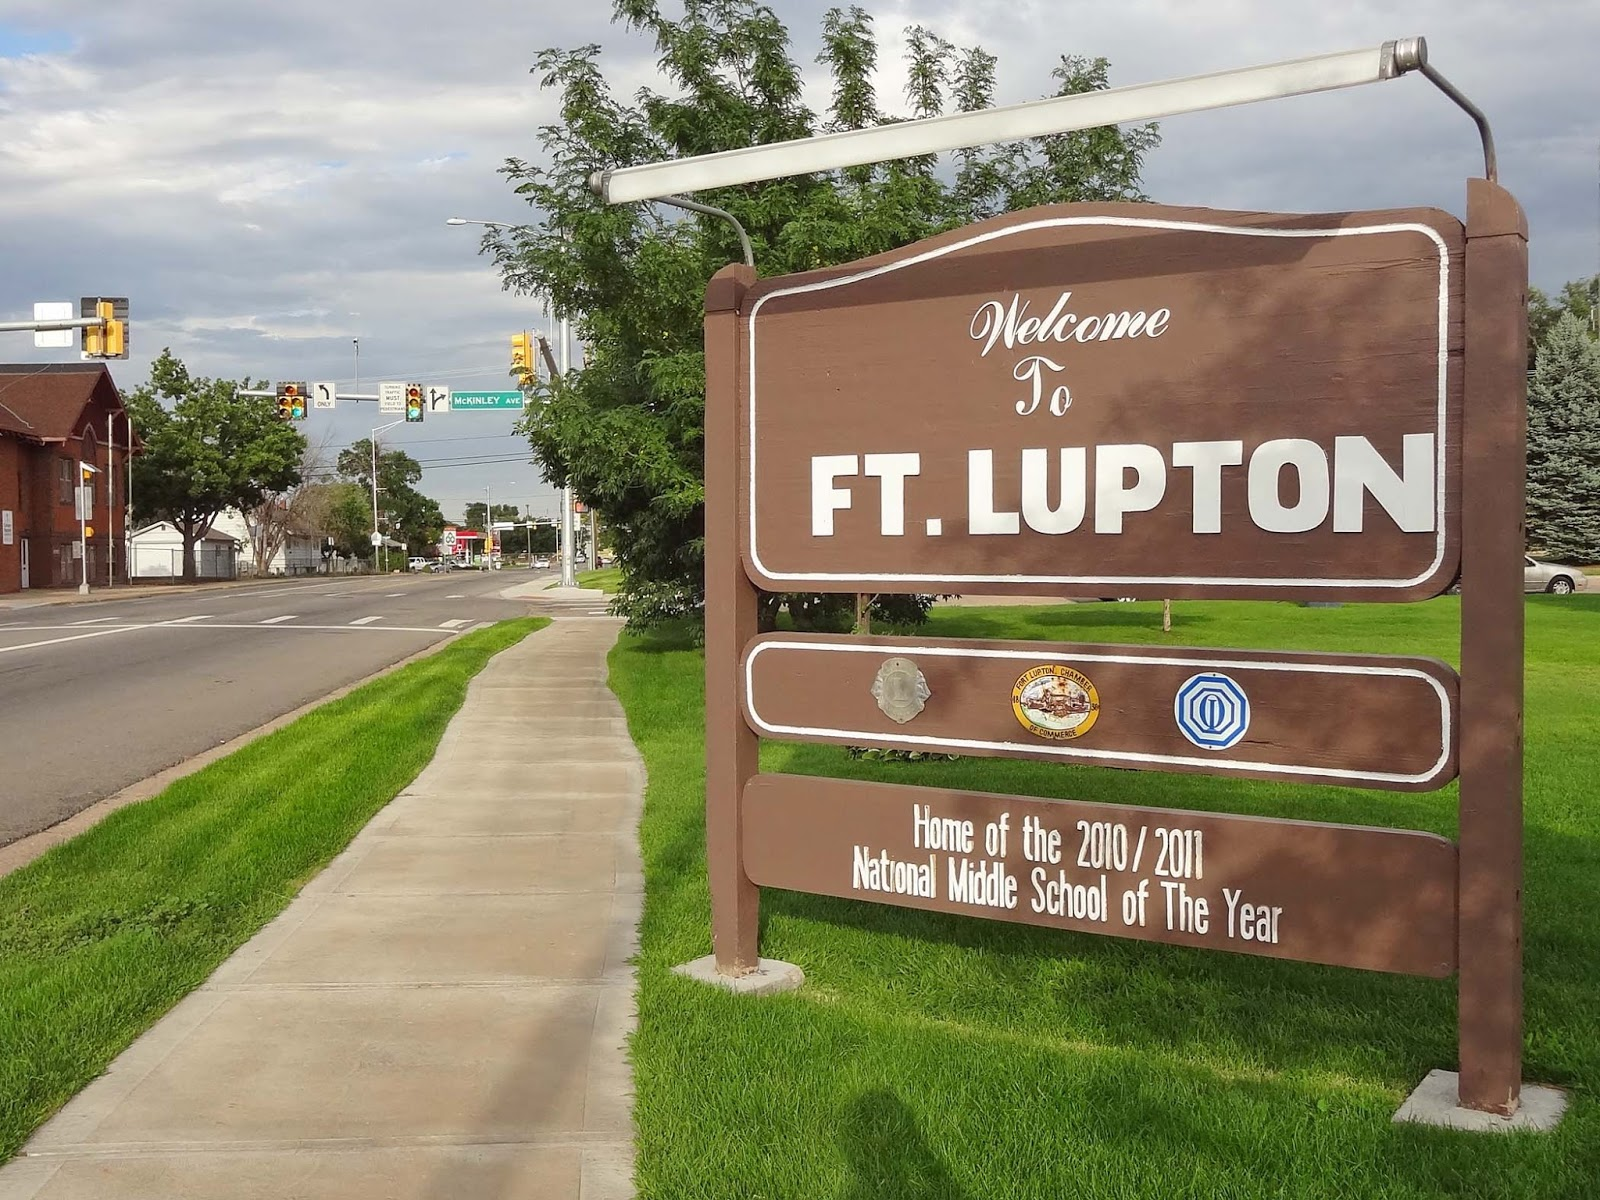 fort lupton latino personals La familia, fort lupton, colorado 4 likes mexican restaurant grand opening to ribs n more at the mill in fort lupton 815 7th st tomorrow it's not la familia anymore.